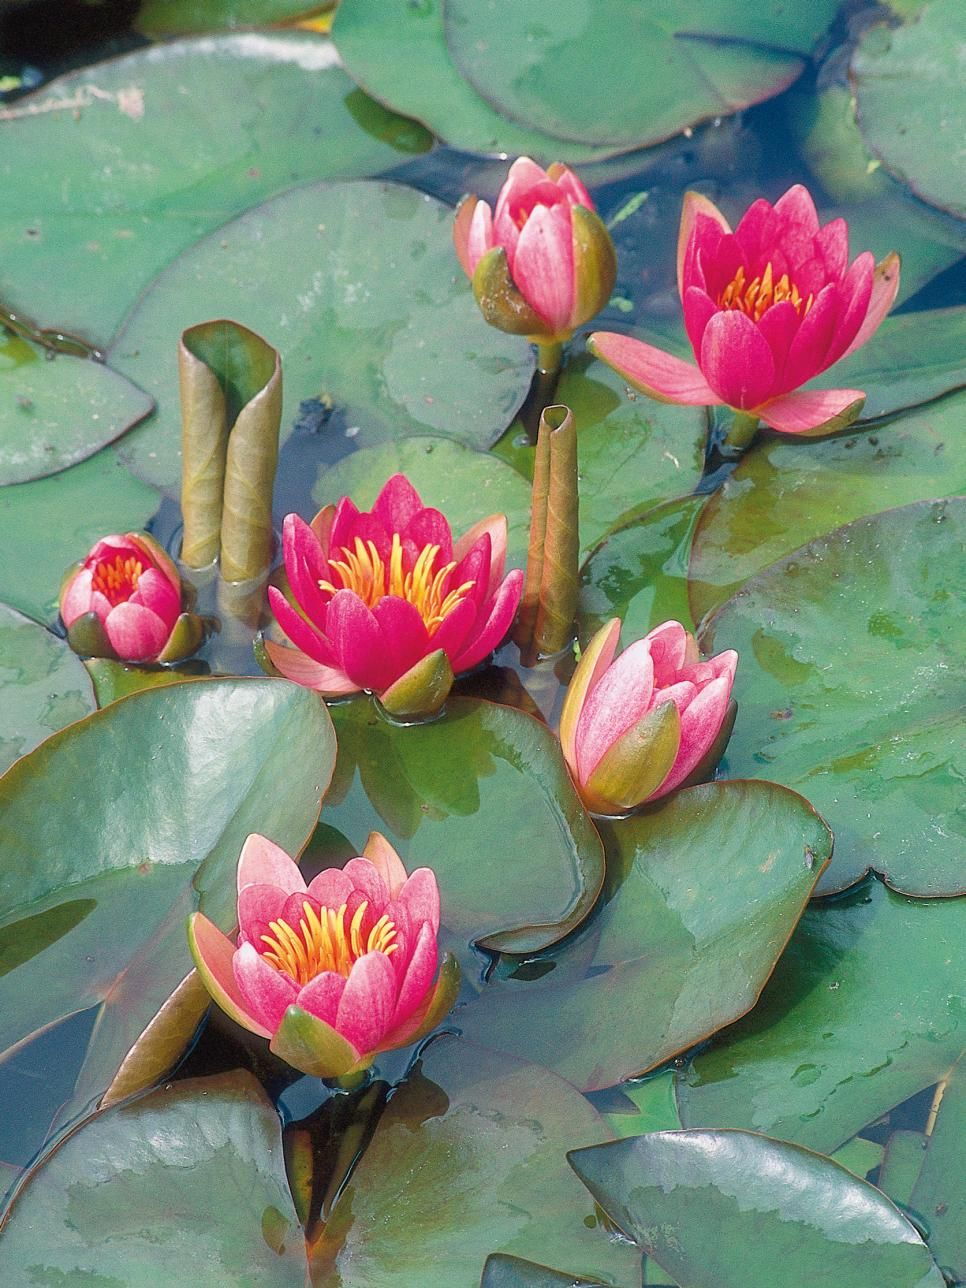 Landscaping 101 Different Types of Plants Water lilies